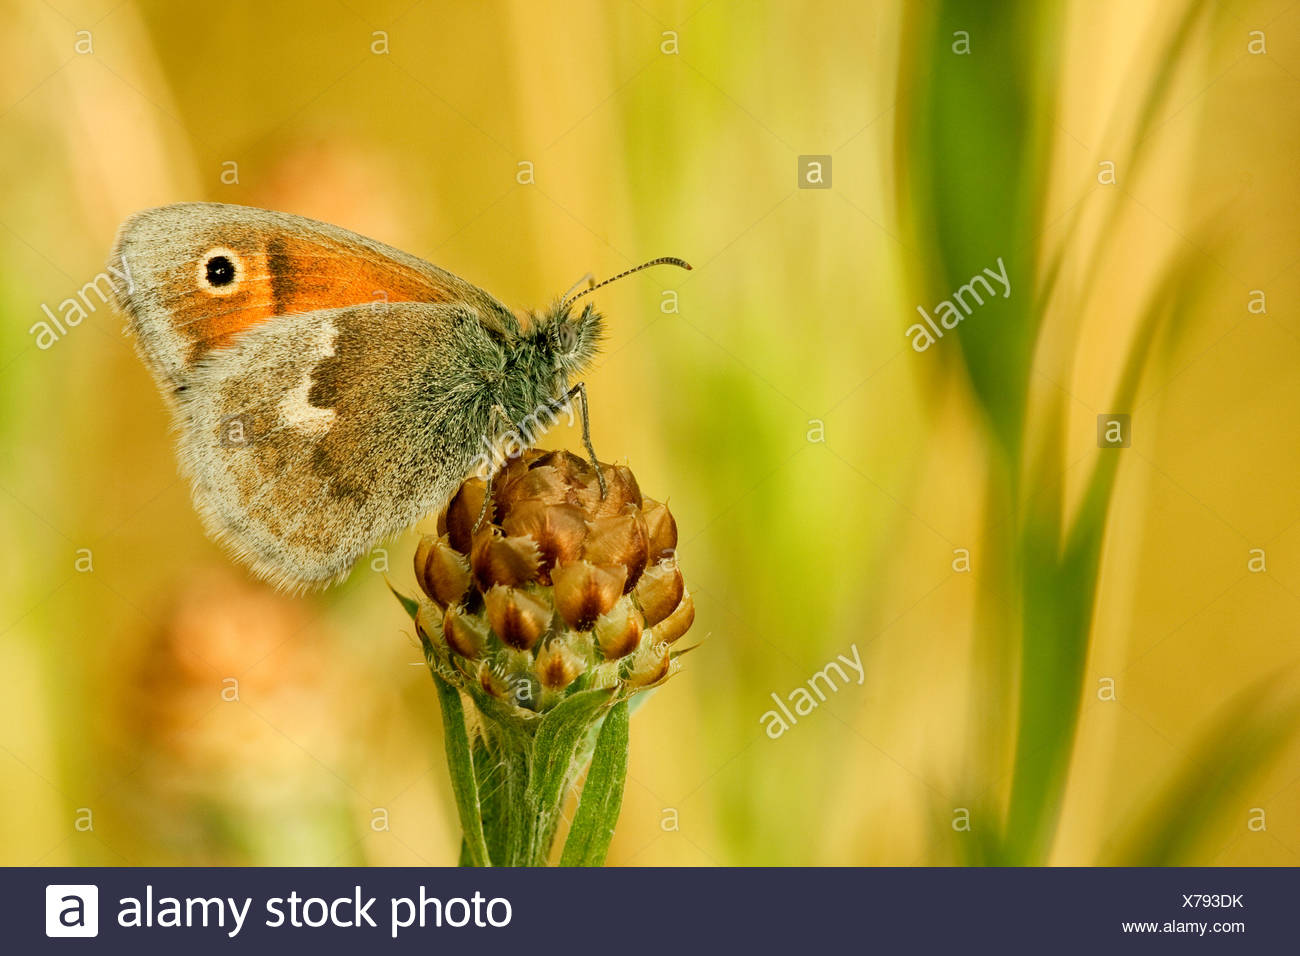 small heath (Coenonympha pamphilus), sitting on inflorescence of a brown-rayed knapweed, Germany, North Rhine-Westphalia - Stock Image